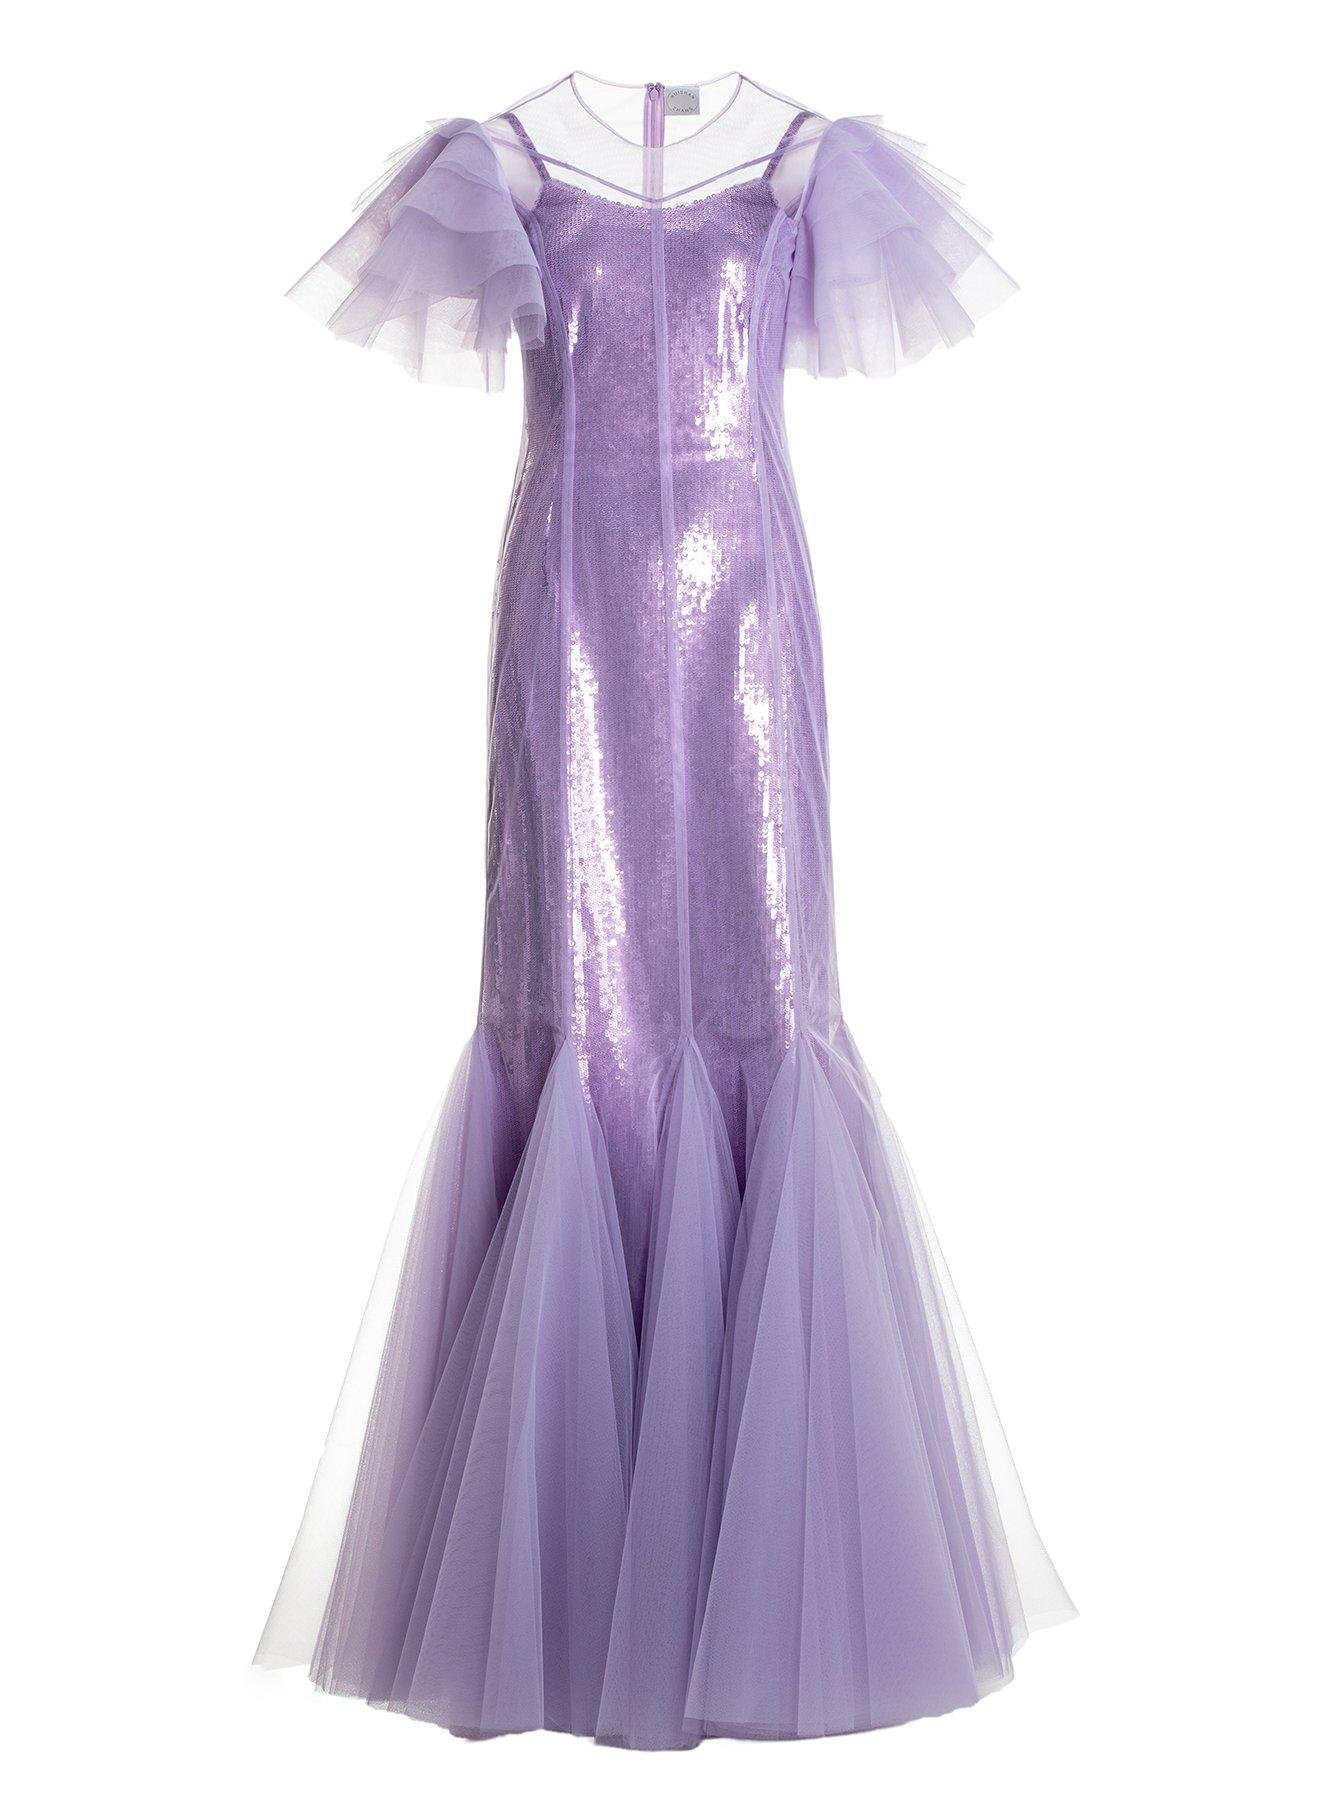 AURORA GOWN LILAC TULLE 10